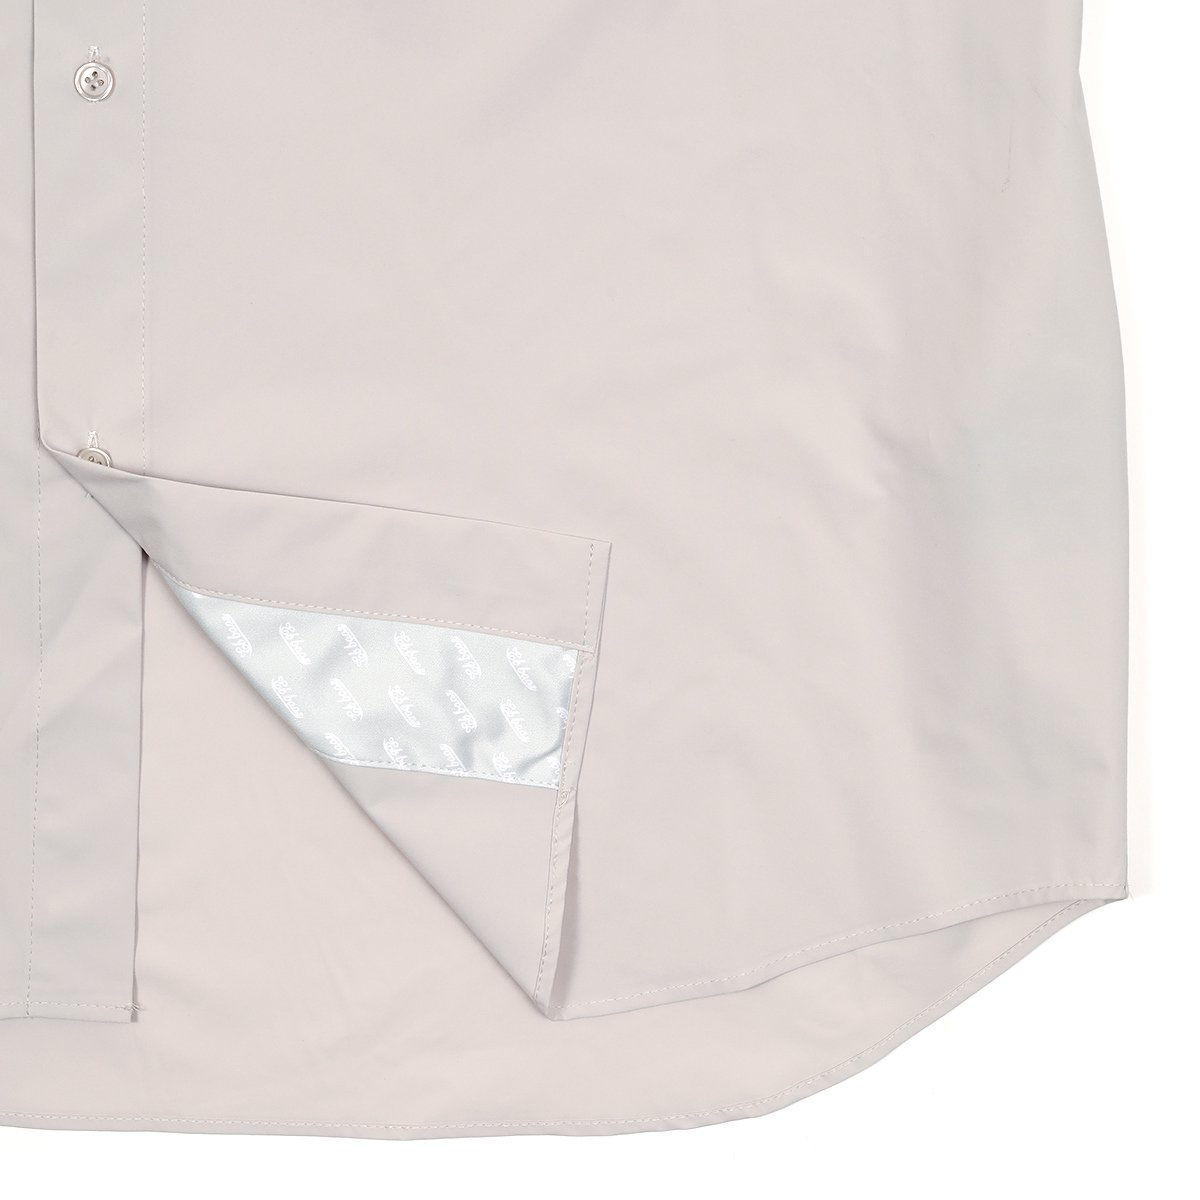 S/S Over size SHIRTS(SOLOTEX) 詳細画像20